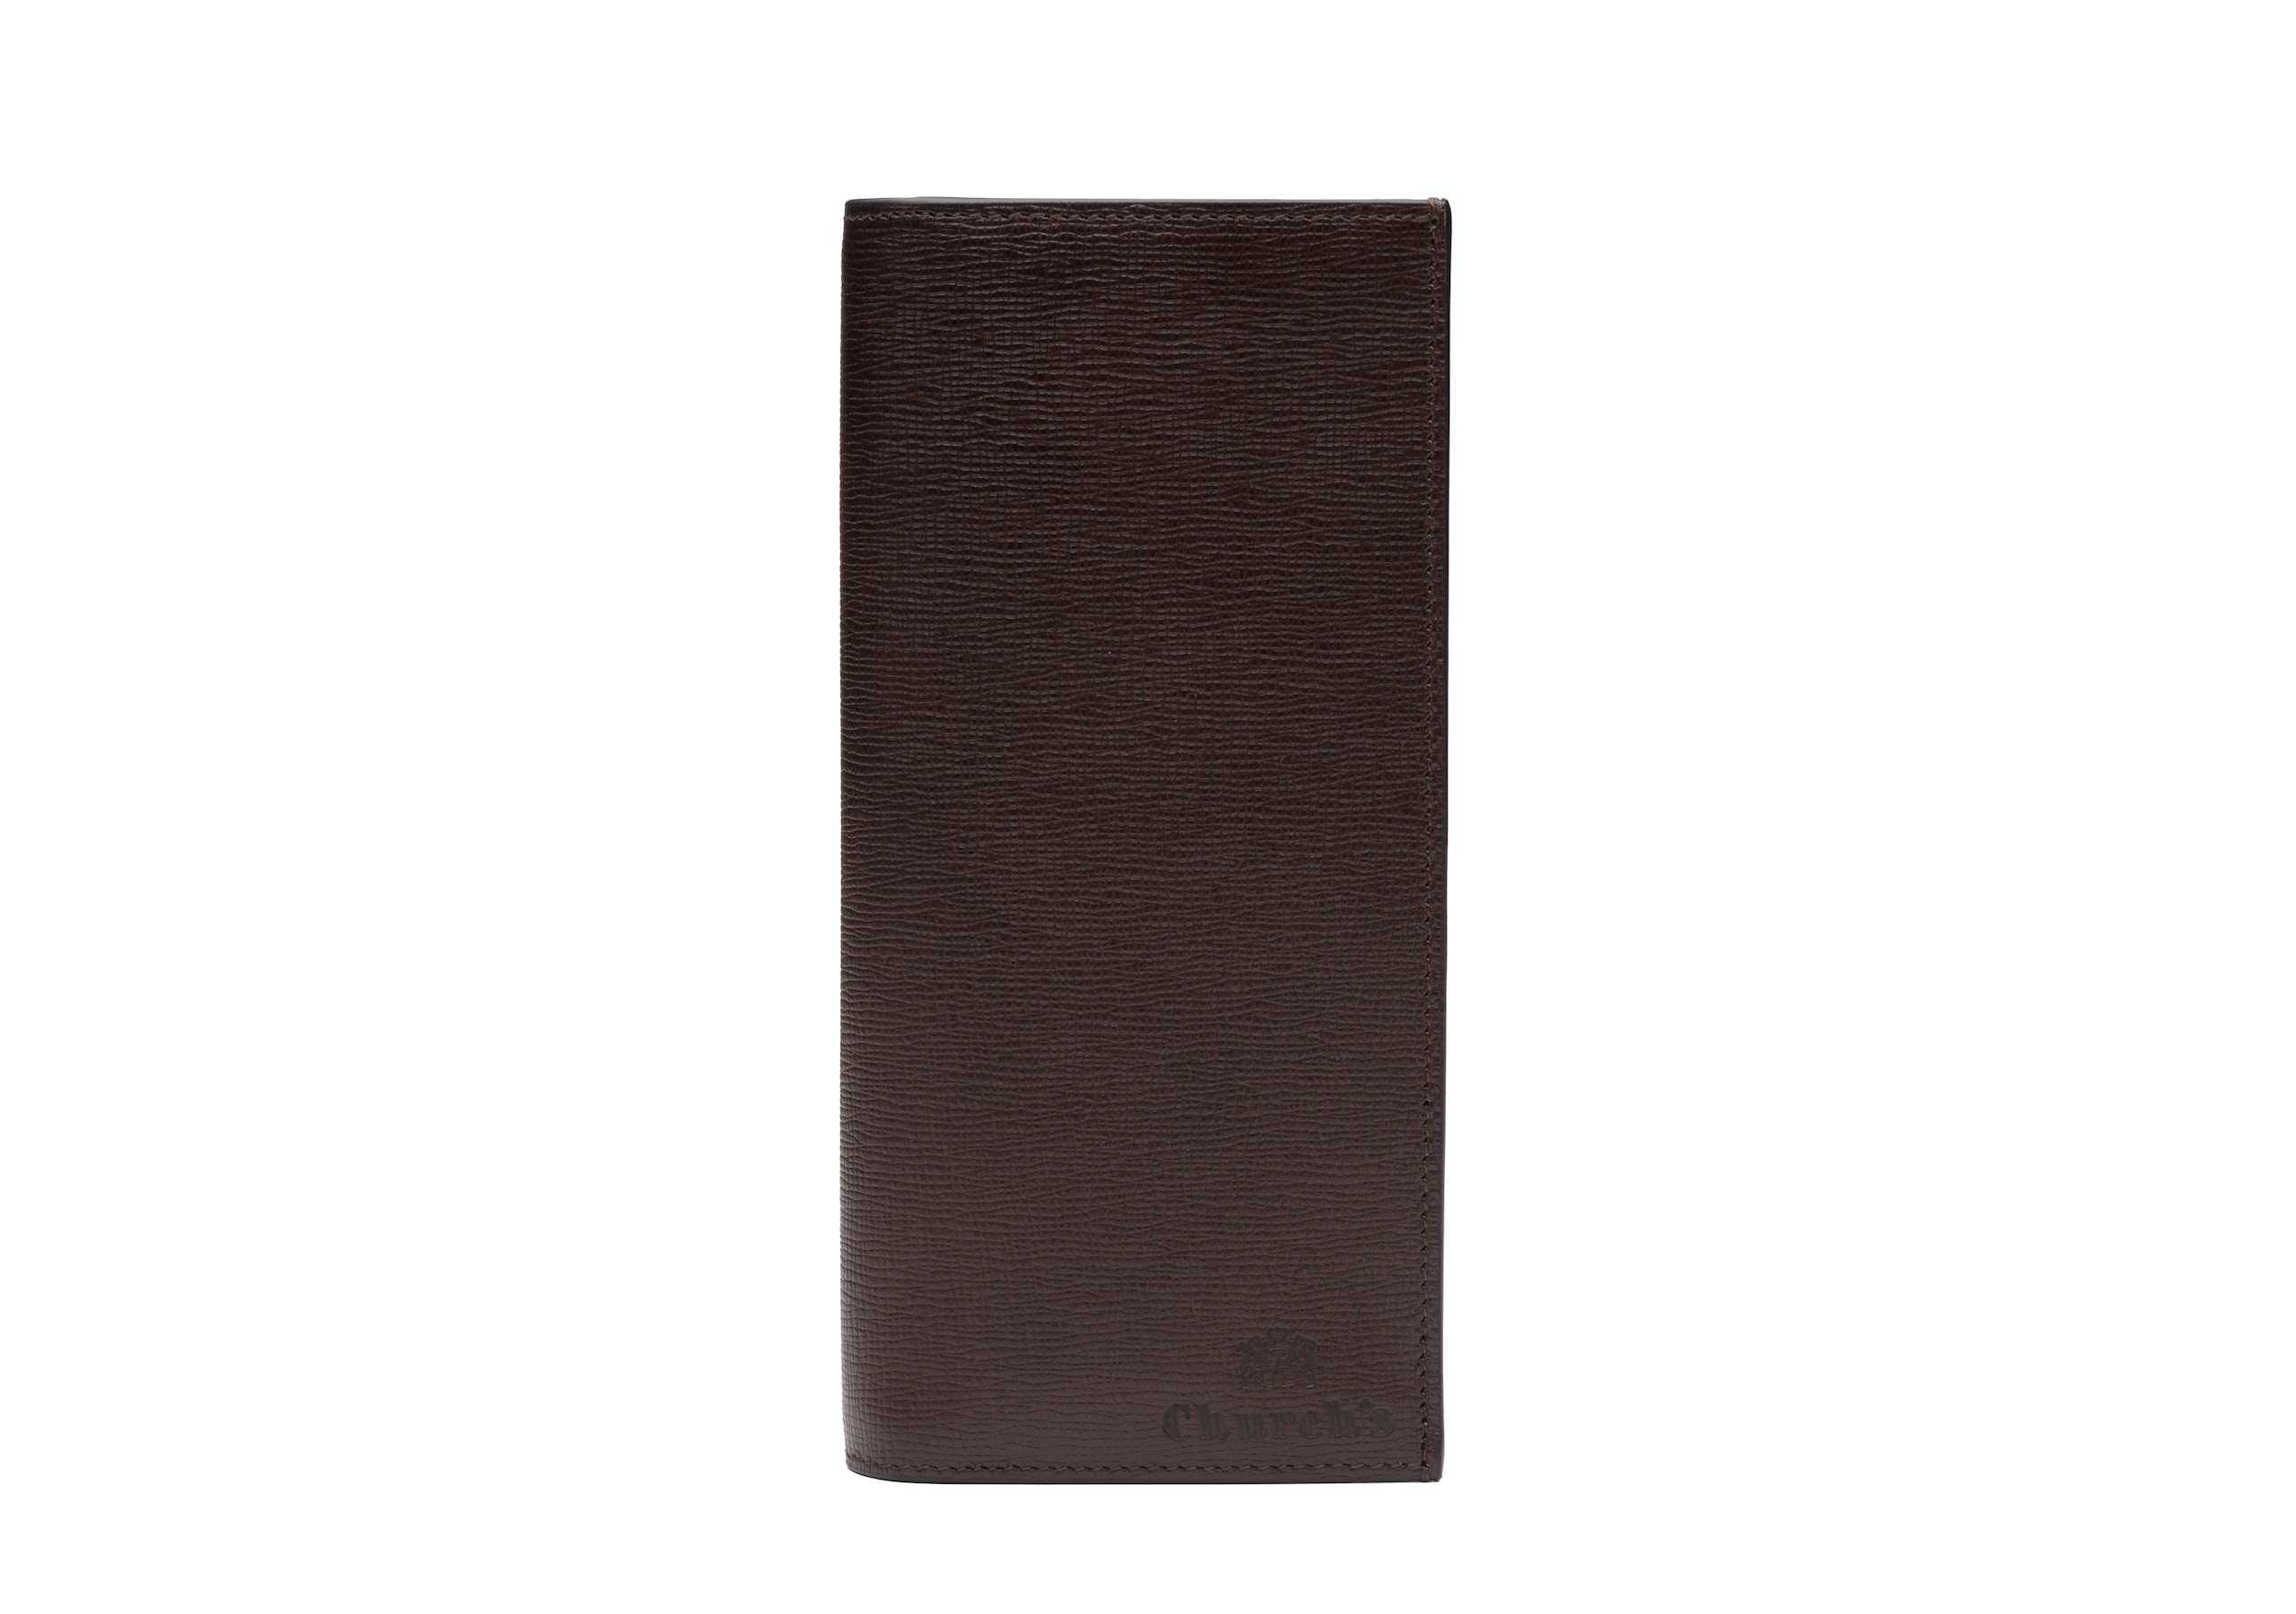 Coat wallet Church's St James Leather Coat Wallet Brown